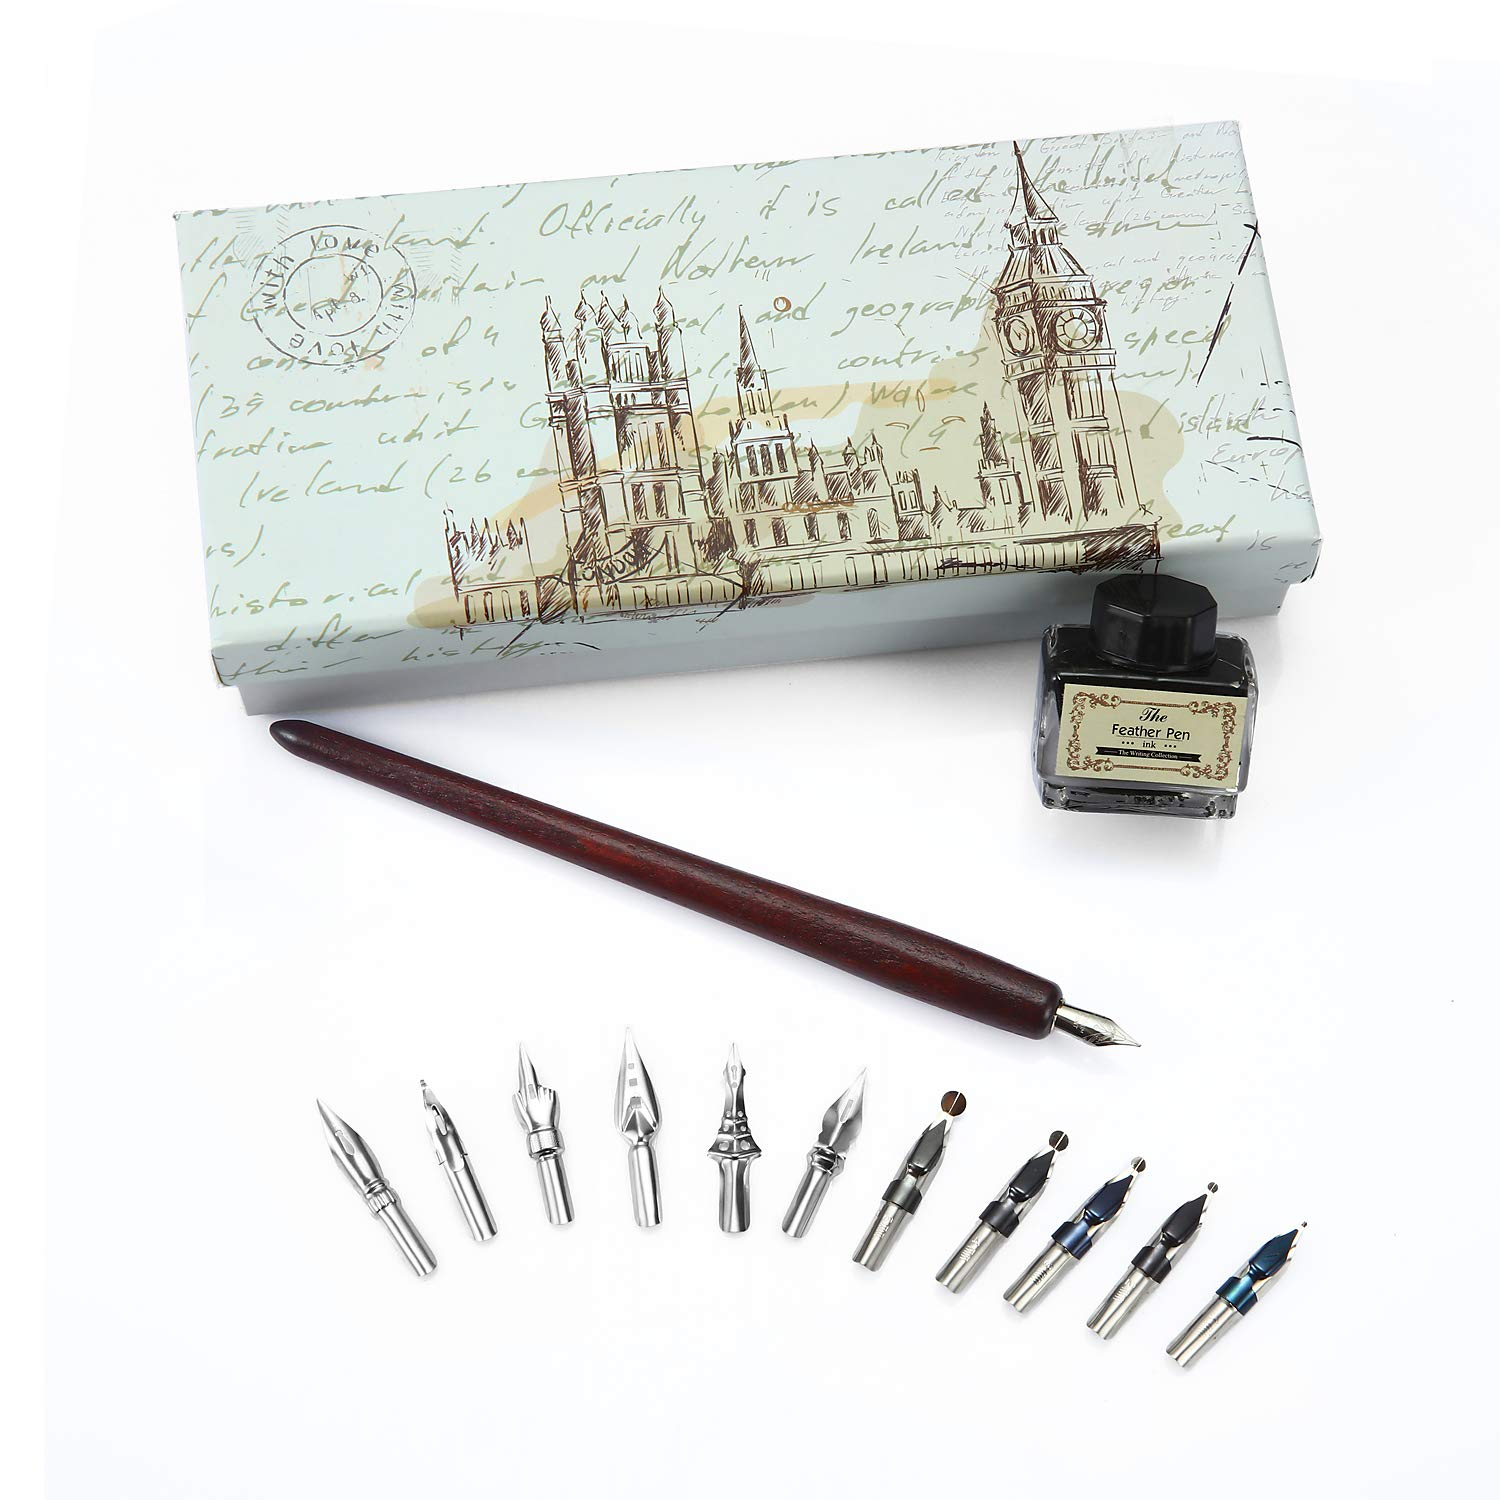 Calligraphy Pen Set Natural Handcrafted Wooden Writing Quill Pen Set with 11pcs Metal Pen Nibs and Black Ink